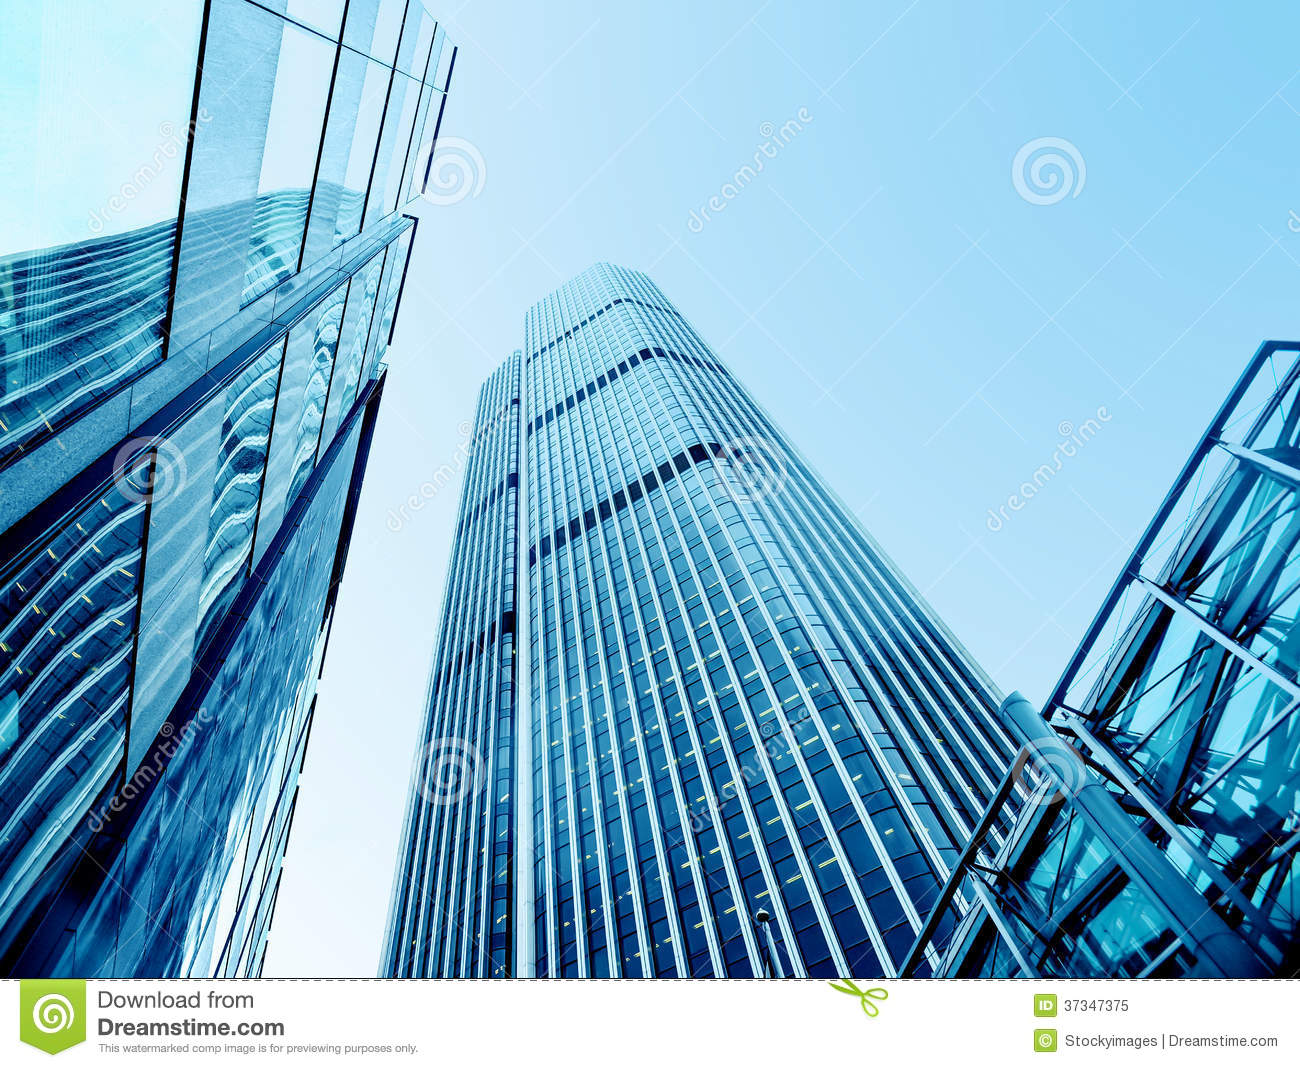 Low Angle Photography Of Building Free Stock Photo: Modern Office Buildings From Low Angle View Royalty Free